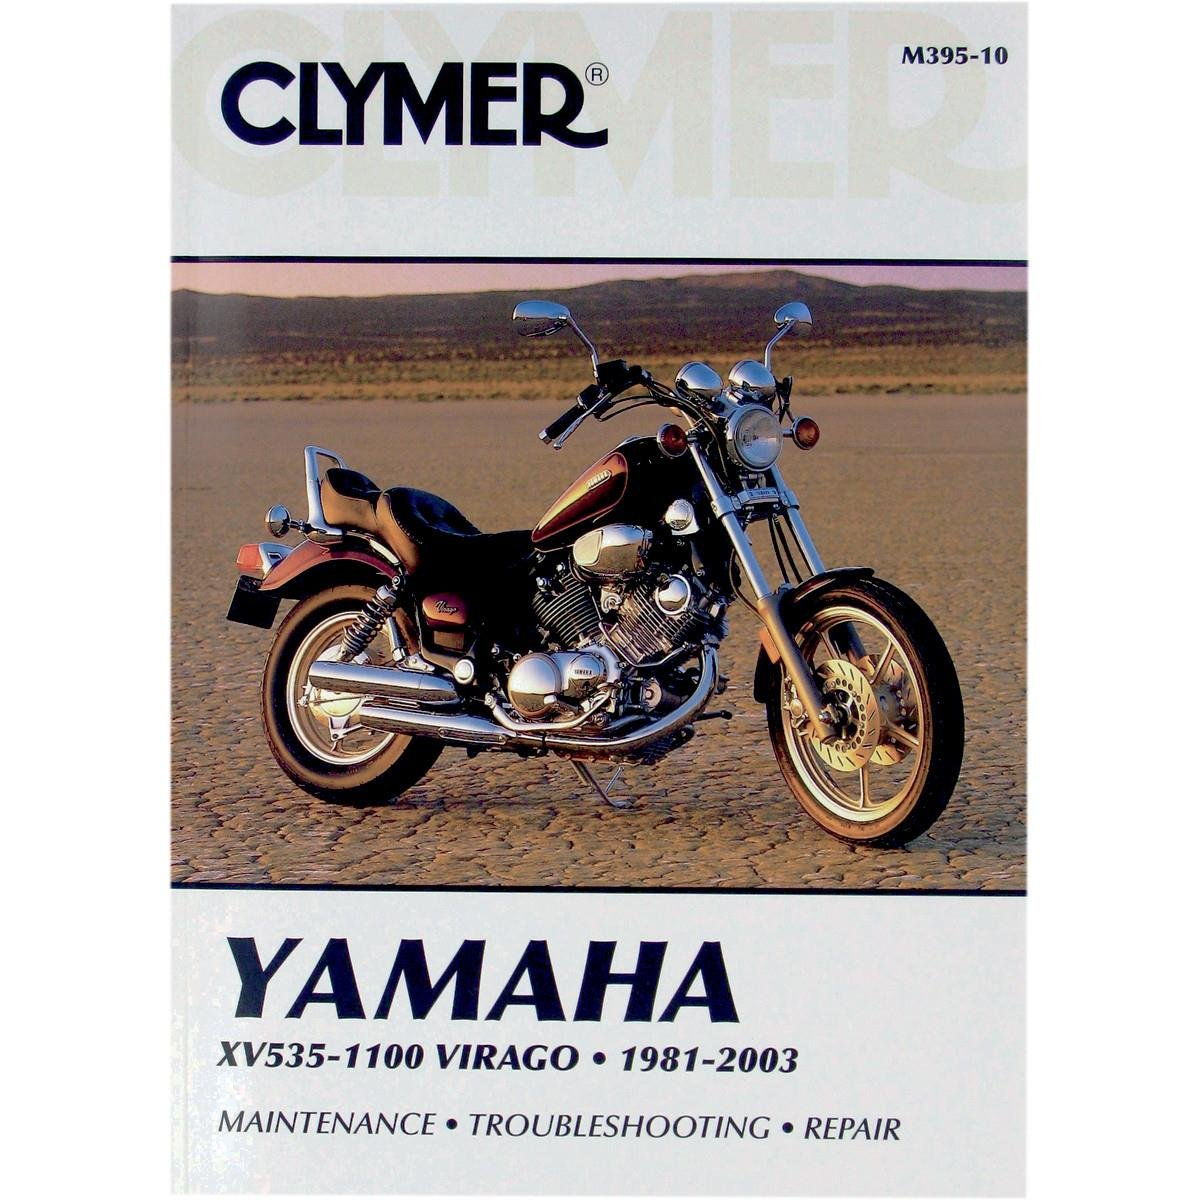 Amazon.com: Clymer Repair Manual for Yamaha XV535/XV1100 XV-535 81-03:  Automotive